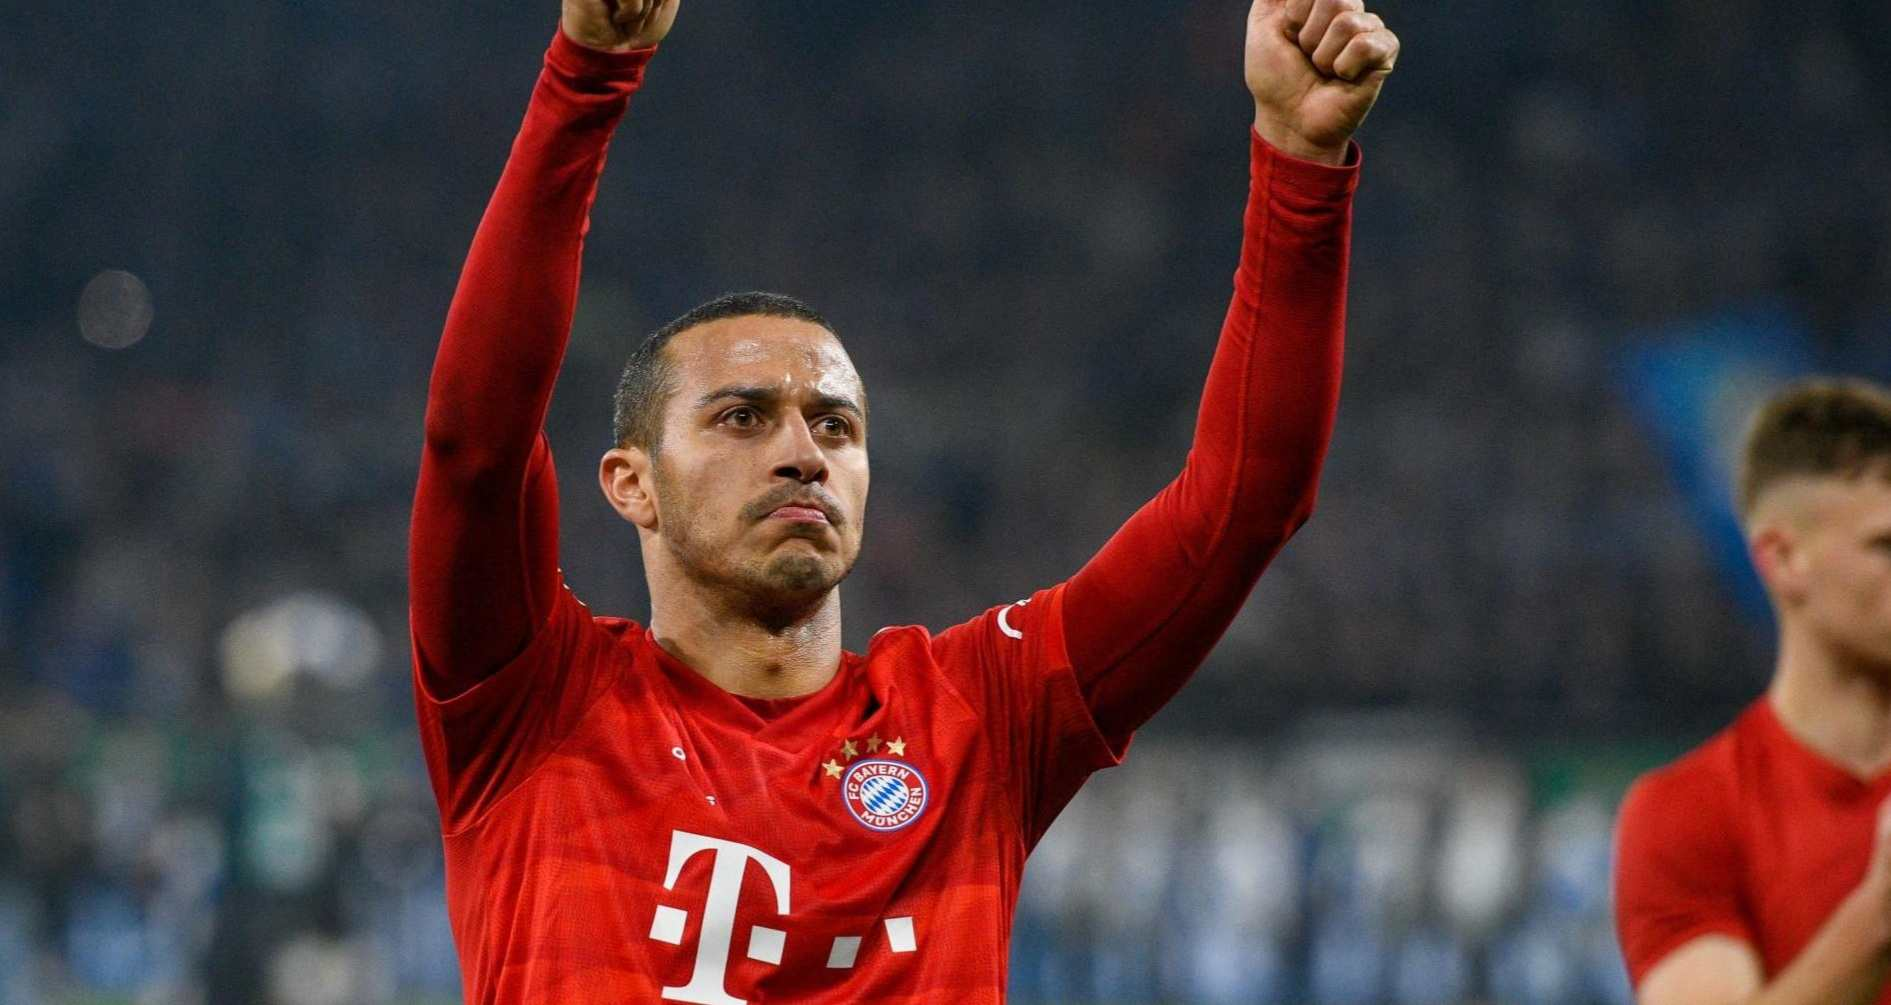 Klopp finally speaks out on Liverpool's move to sign Thiago Alcantara